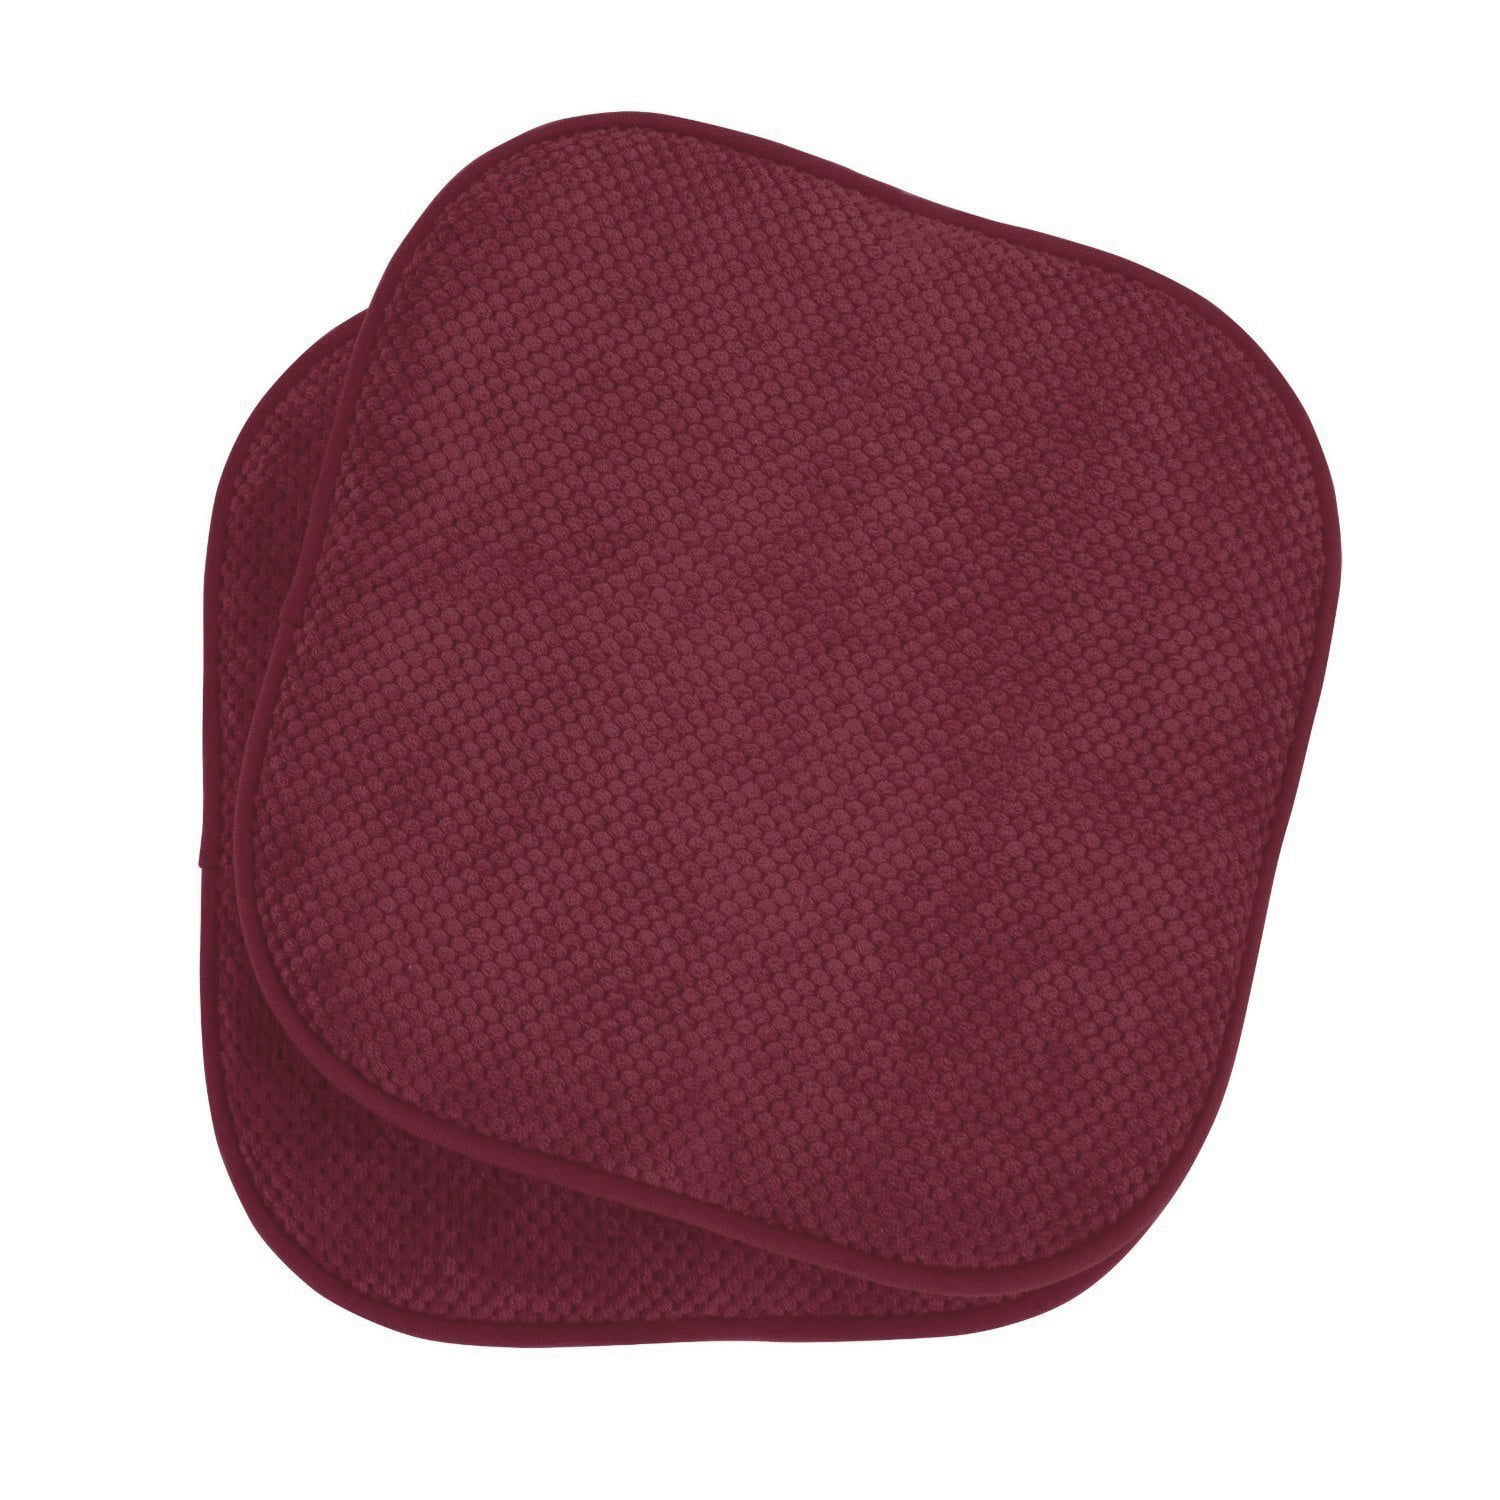 2 Pack: GoodGram Non Slip Ultra Comfort Memory Foam Chair Pads Wine by GoodGram